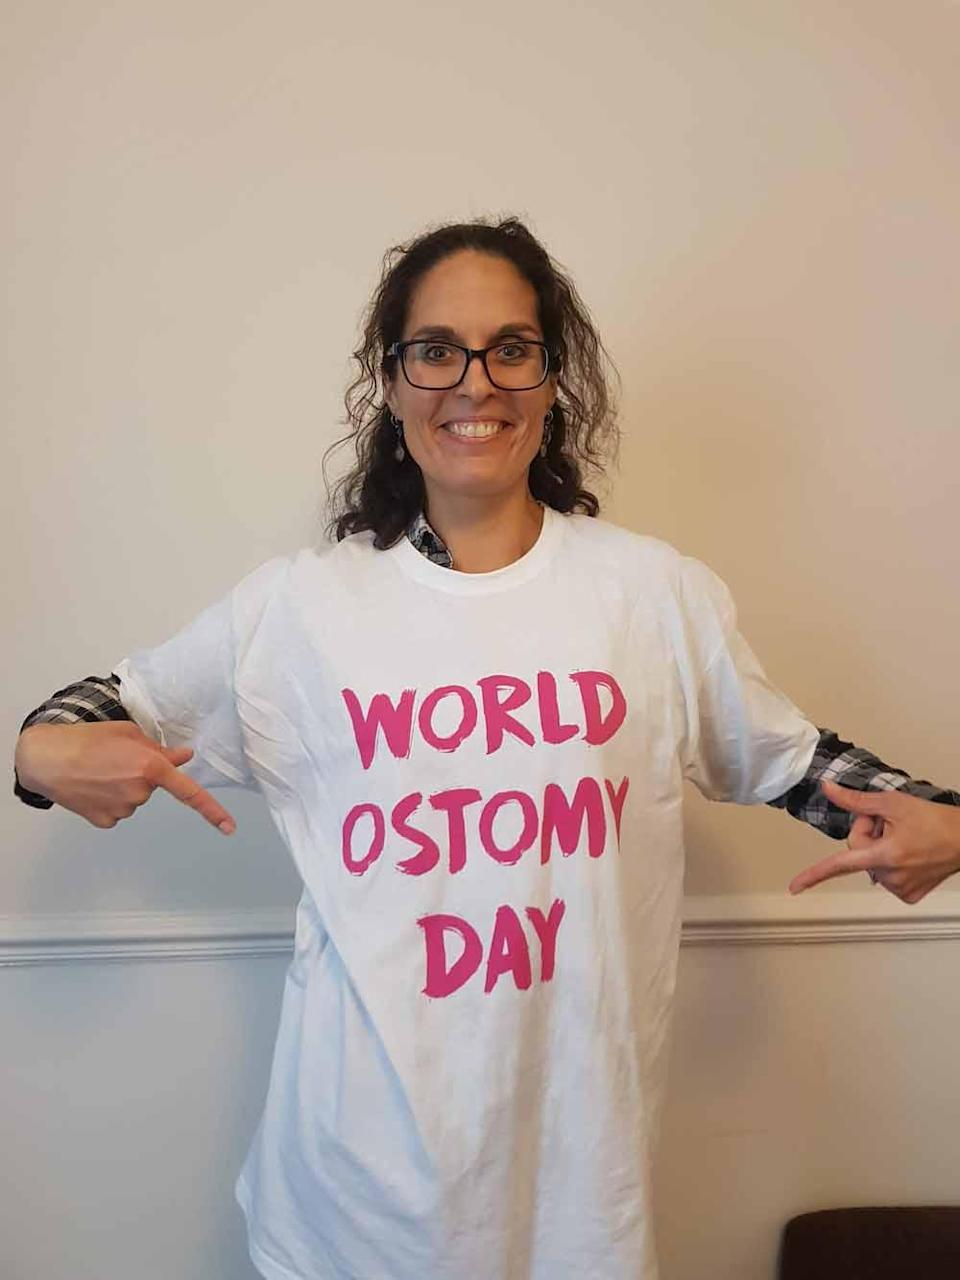 Laura is marking World Ostomy Day. PA REAL LIFE COLLECT